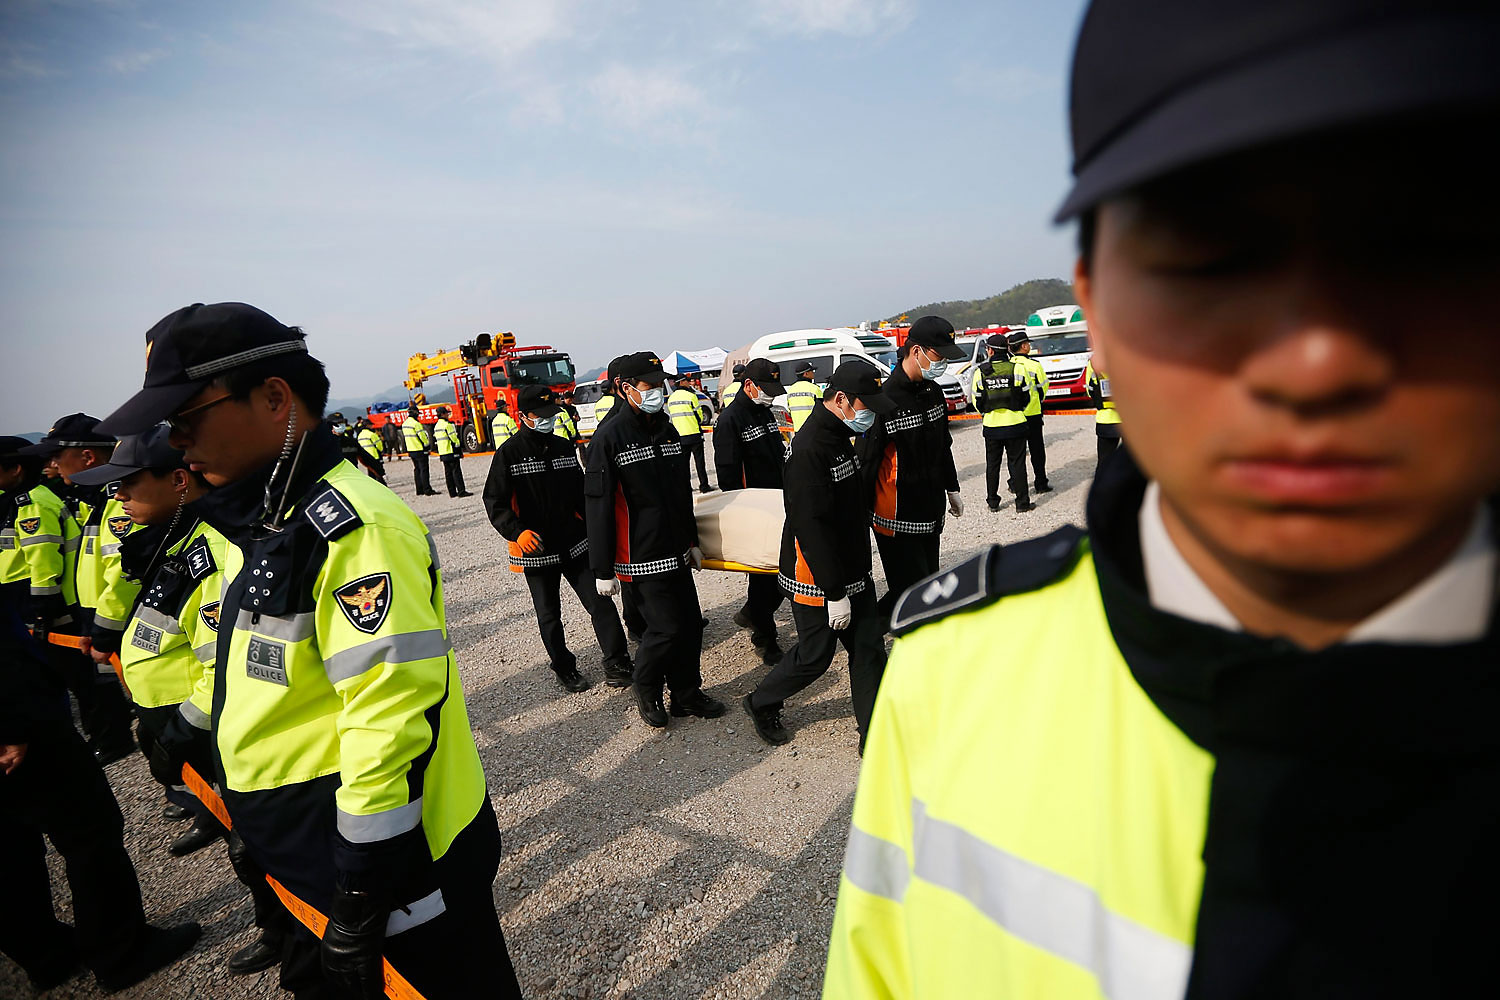 Rescue workers carry the body of a passenger who was on the capsized Sewol passenger ship in Jindo, the South Korean port town where family members of the missing passengers have gathered, on  April 20, 2014